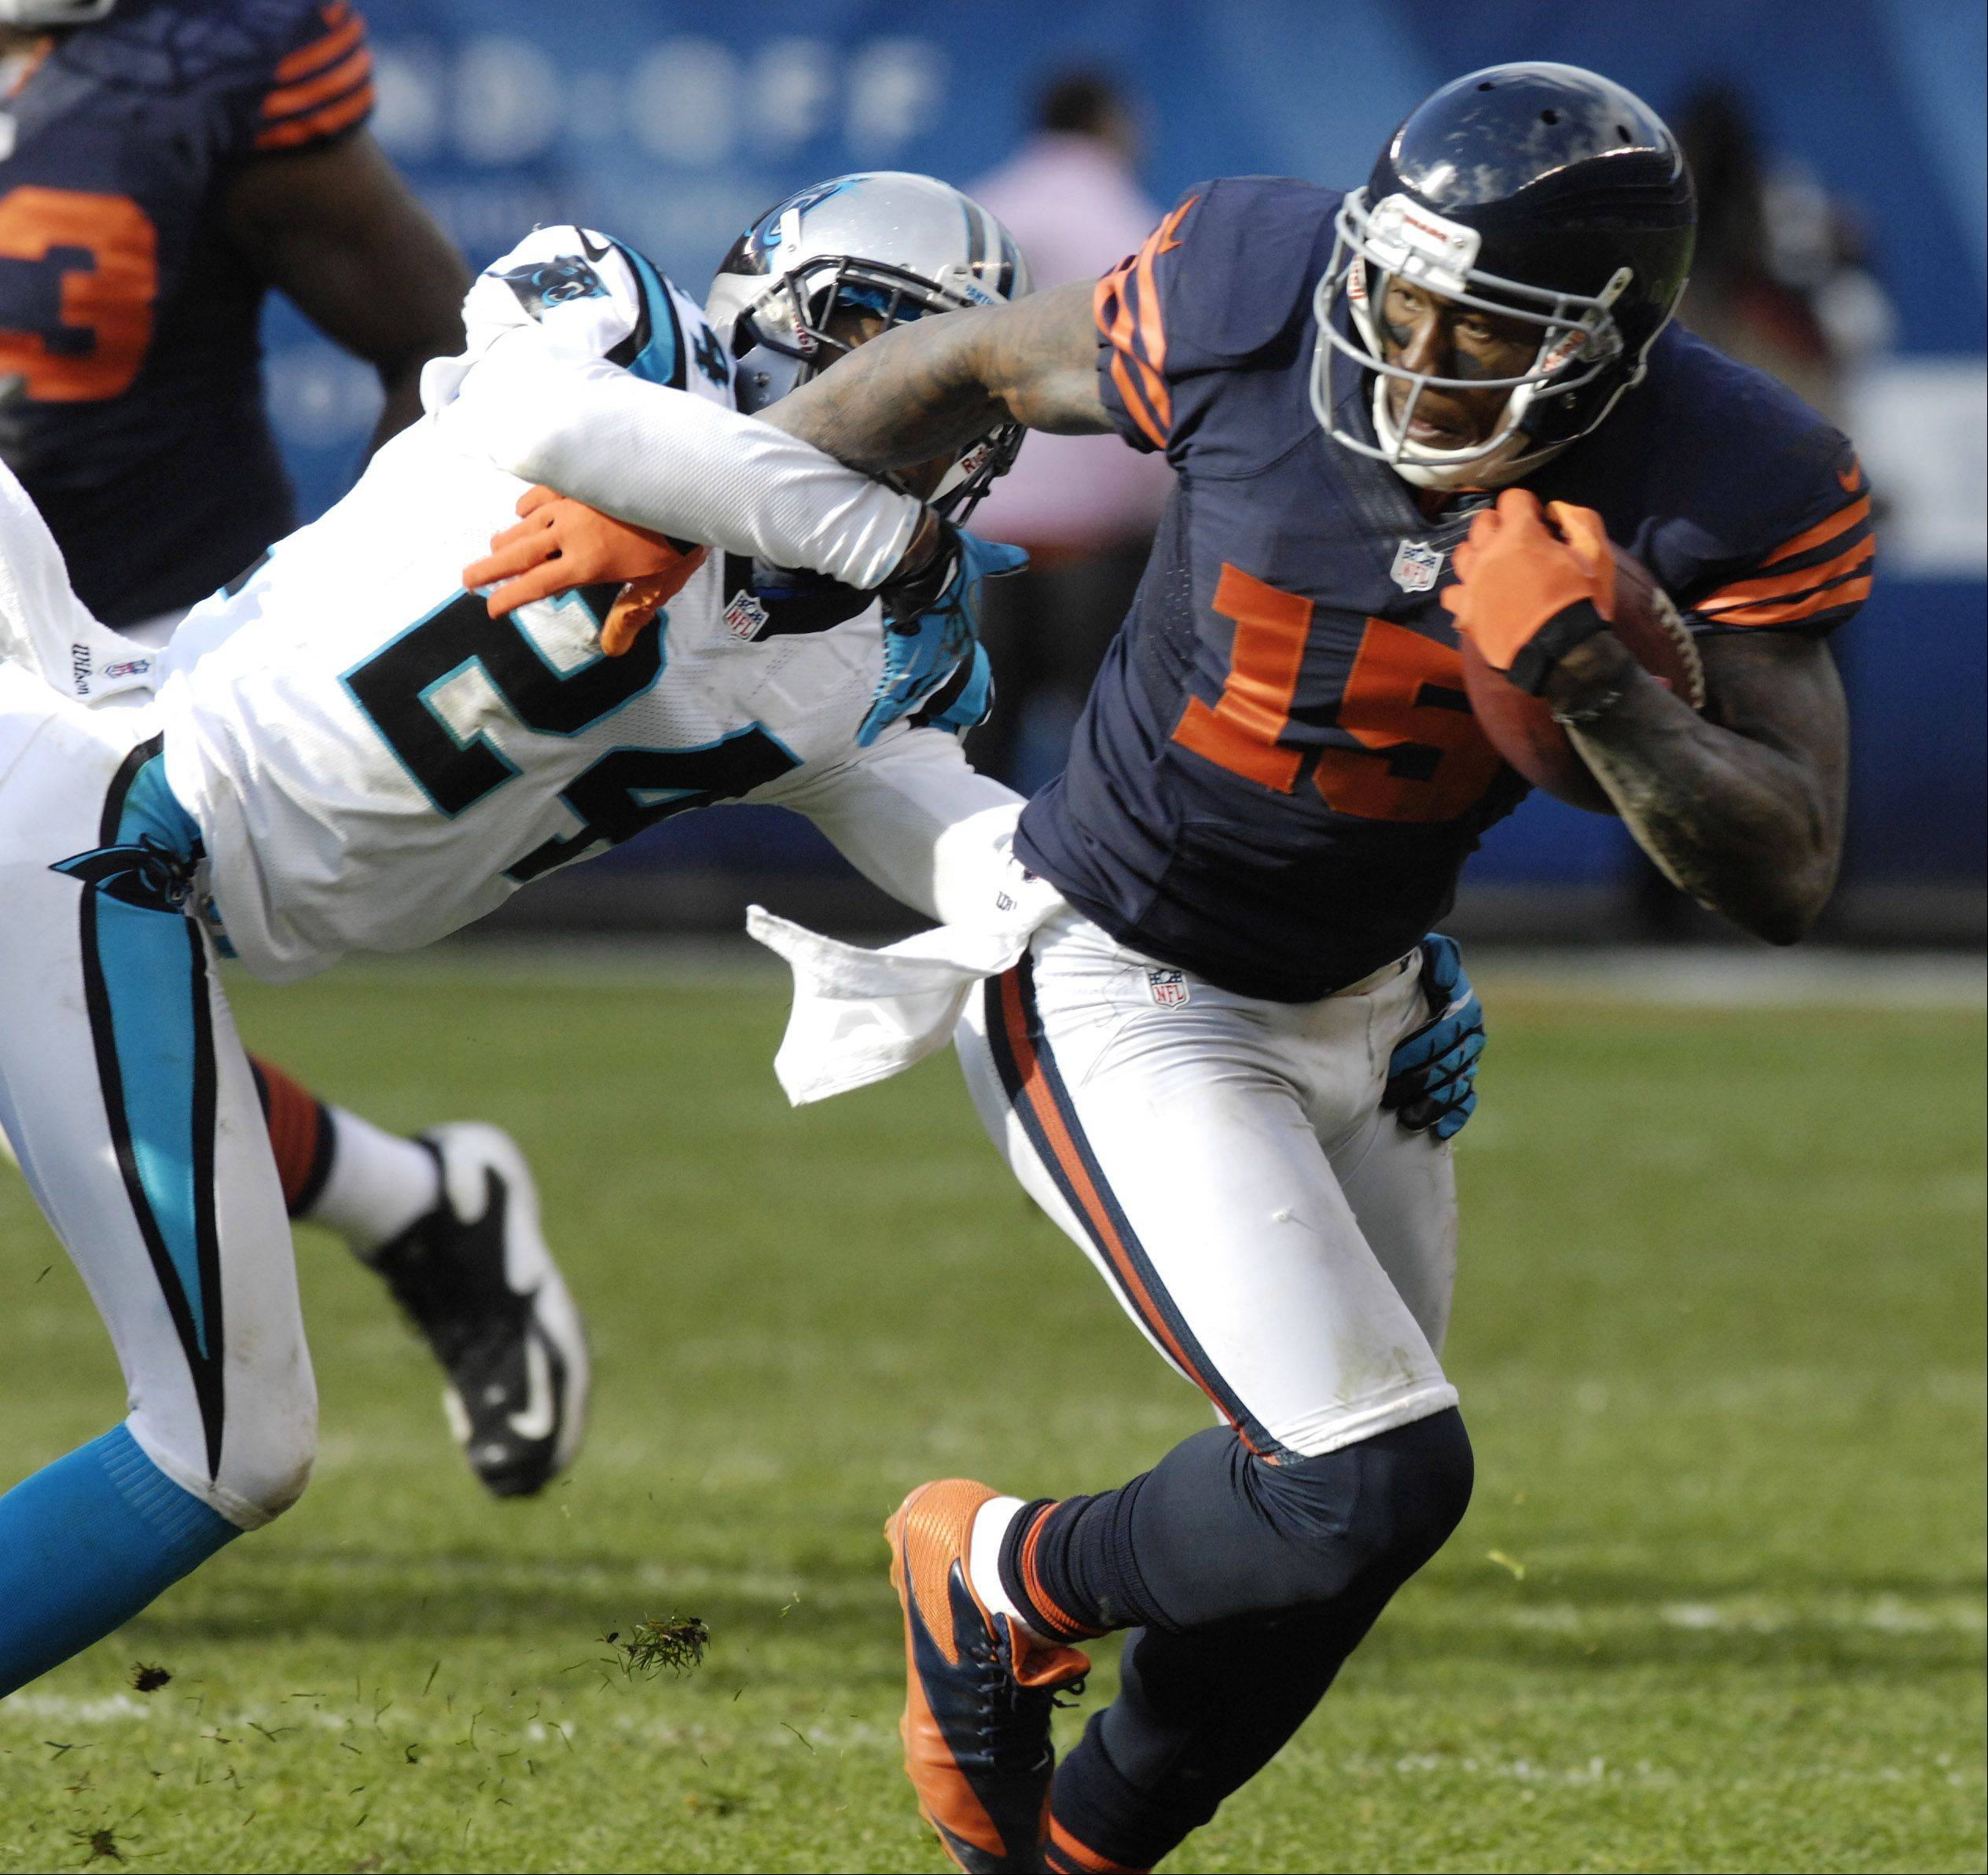 Bears wide receiver Brandon Marshall helps his team get within field-goal range while being pursued by Carolina Panthers defensive back Josh Norman during Sunday's game at Soldier Field.